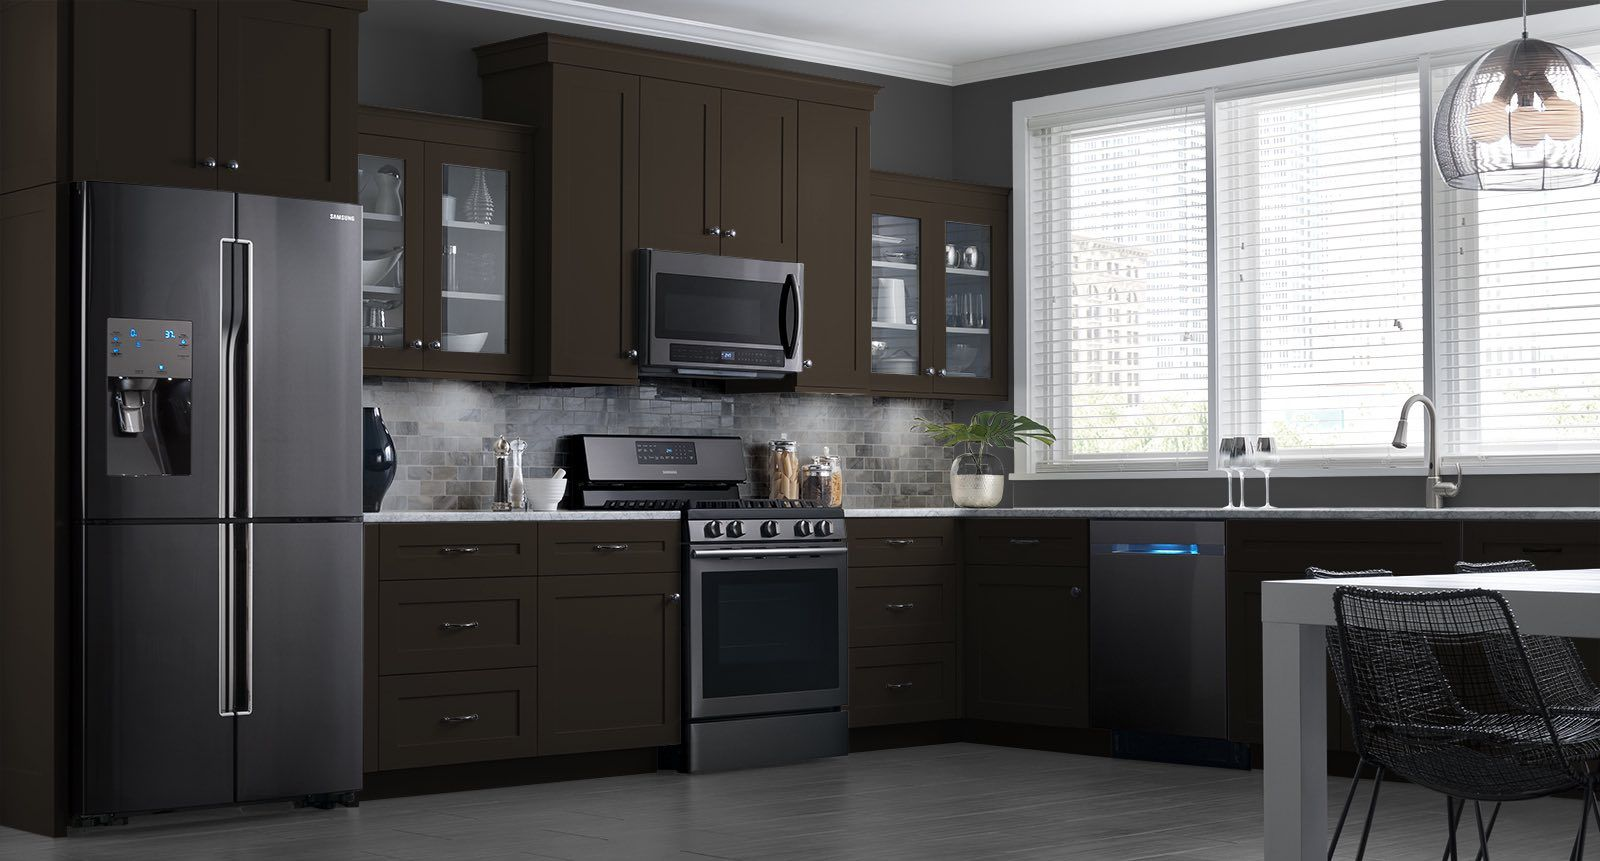 Design My Dream Kitchen These Samsung Black Stainless Steel Appliances Look Beautiful In